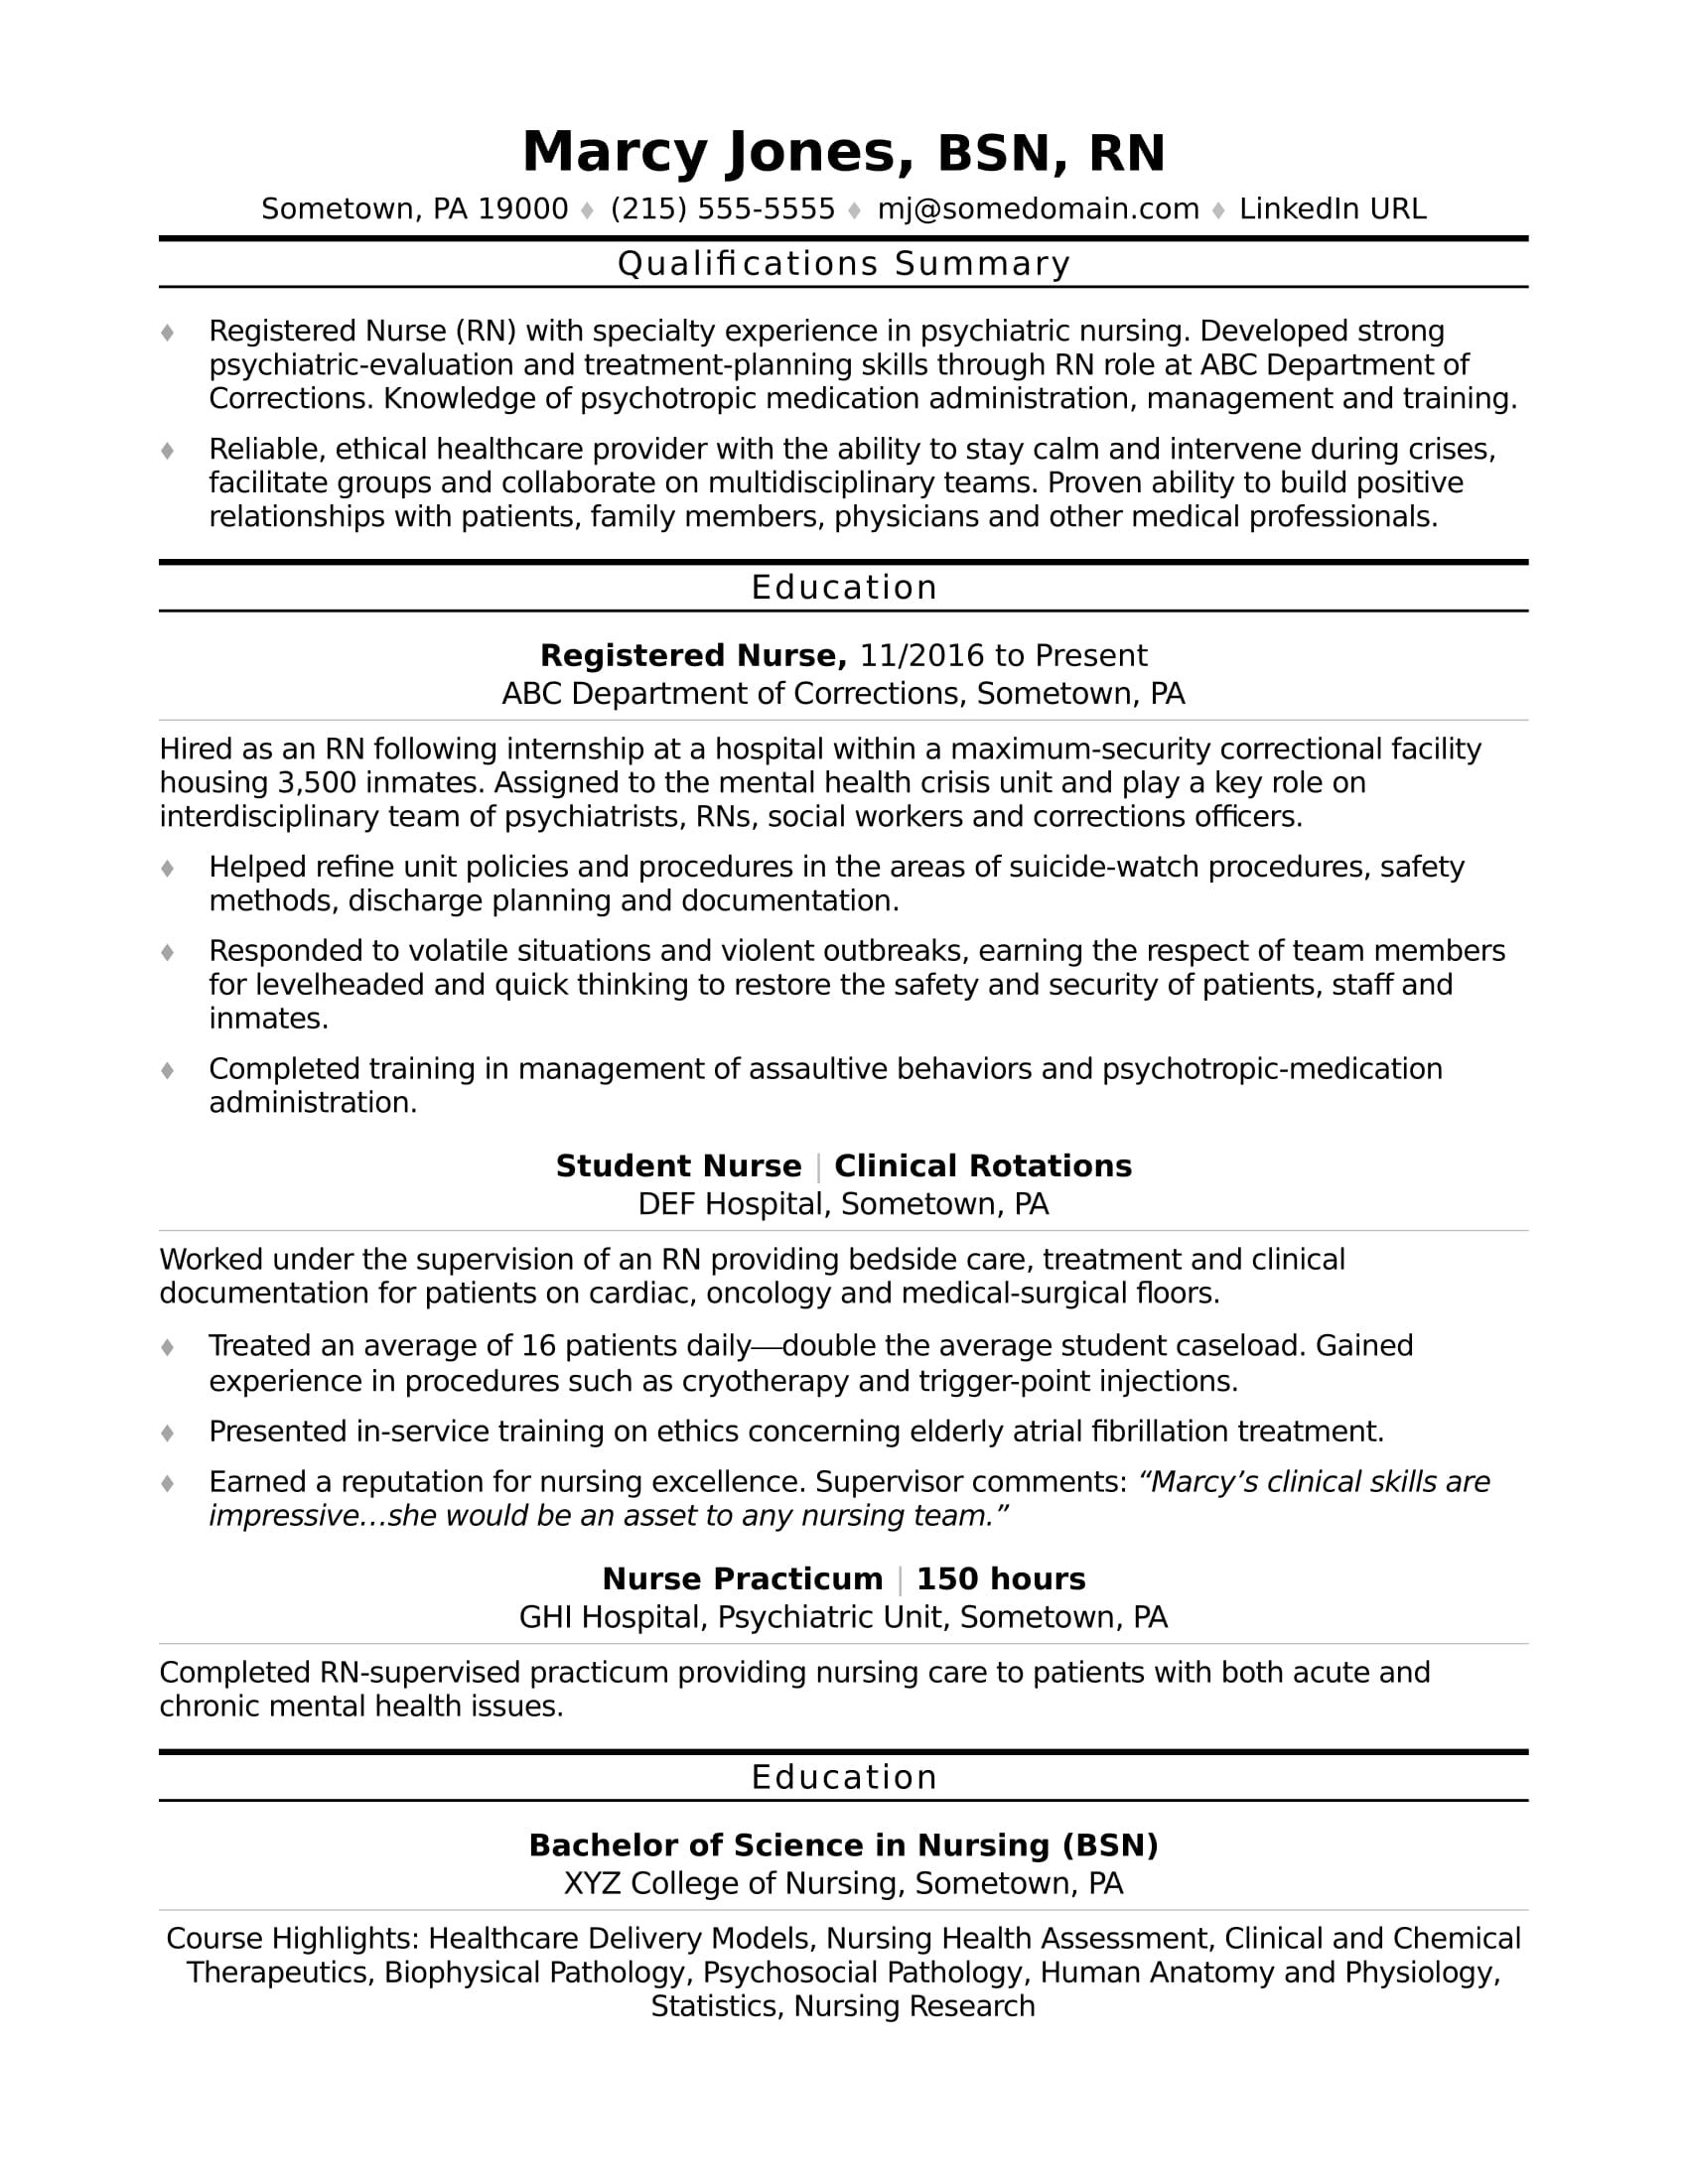 Learn how to build a powerful entrylevel nurse resume